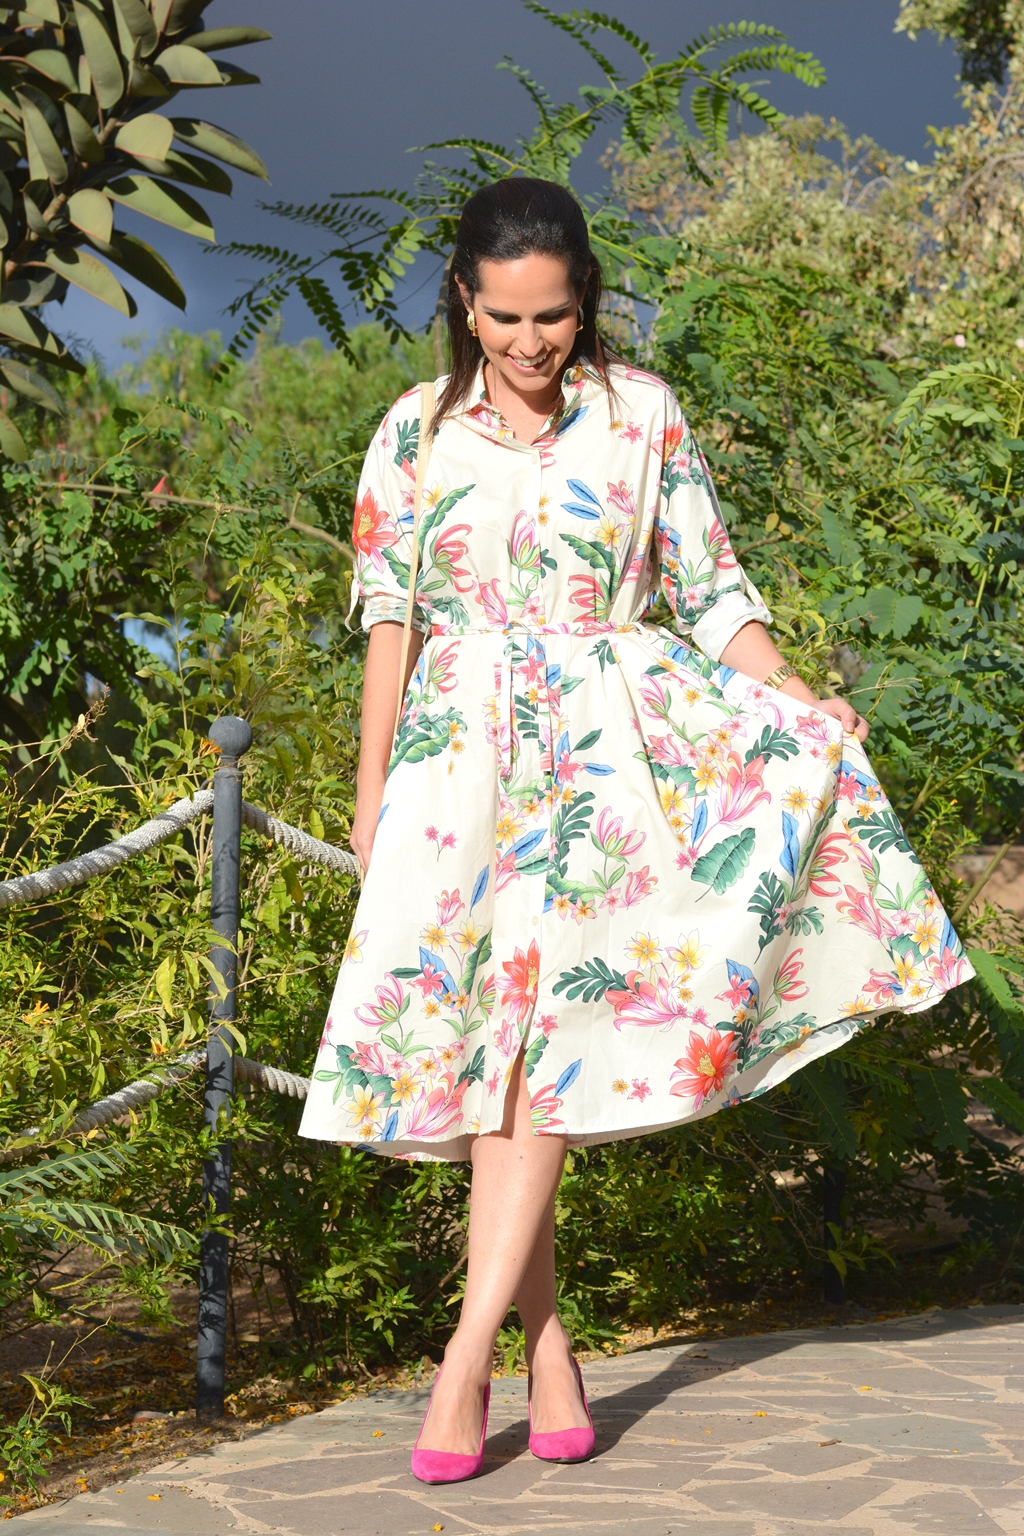 flowers-zara-dress-chic-outfit-daily-look